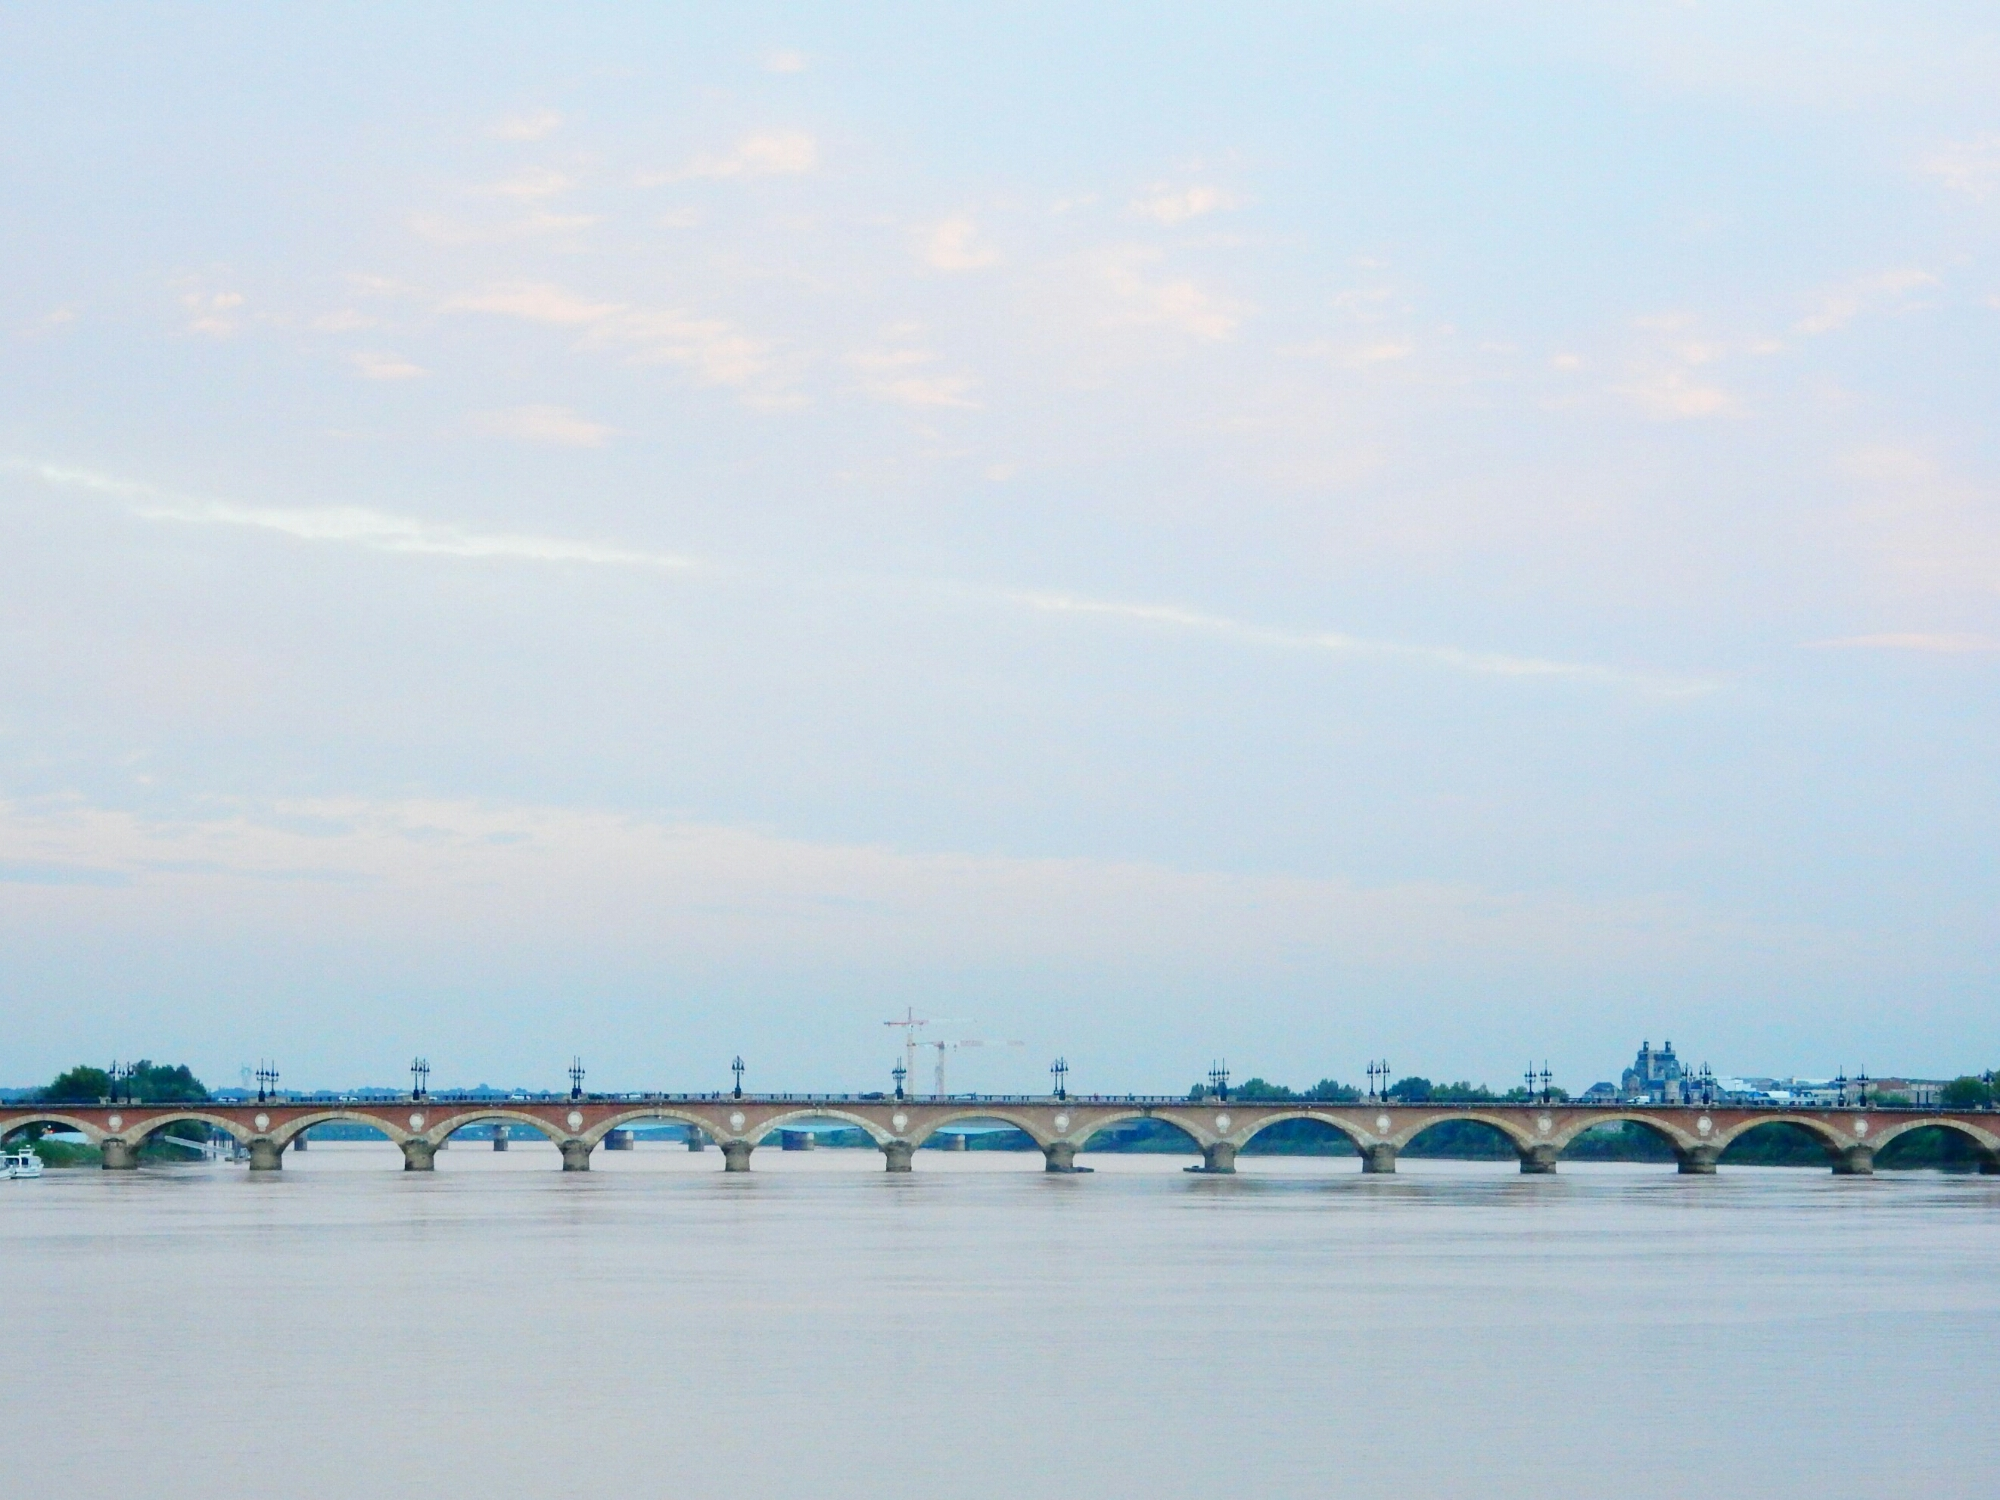 De Garonne in Bordeaux